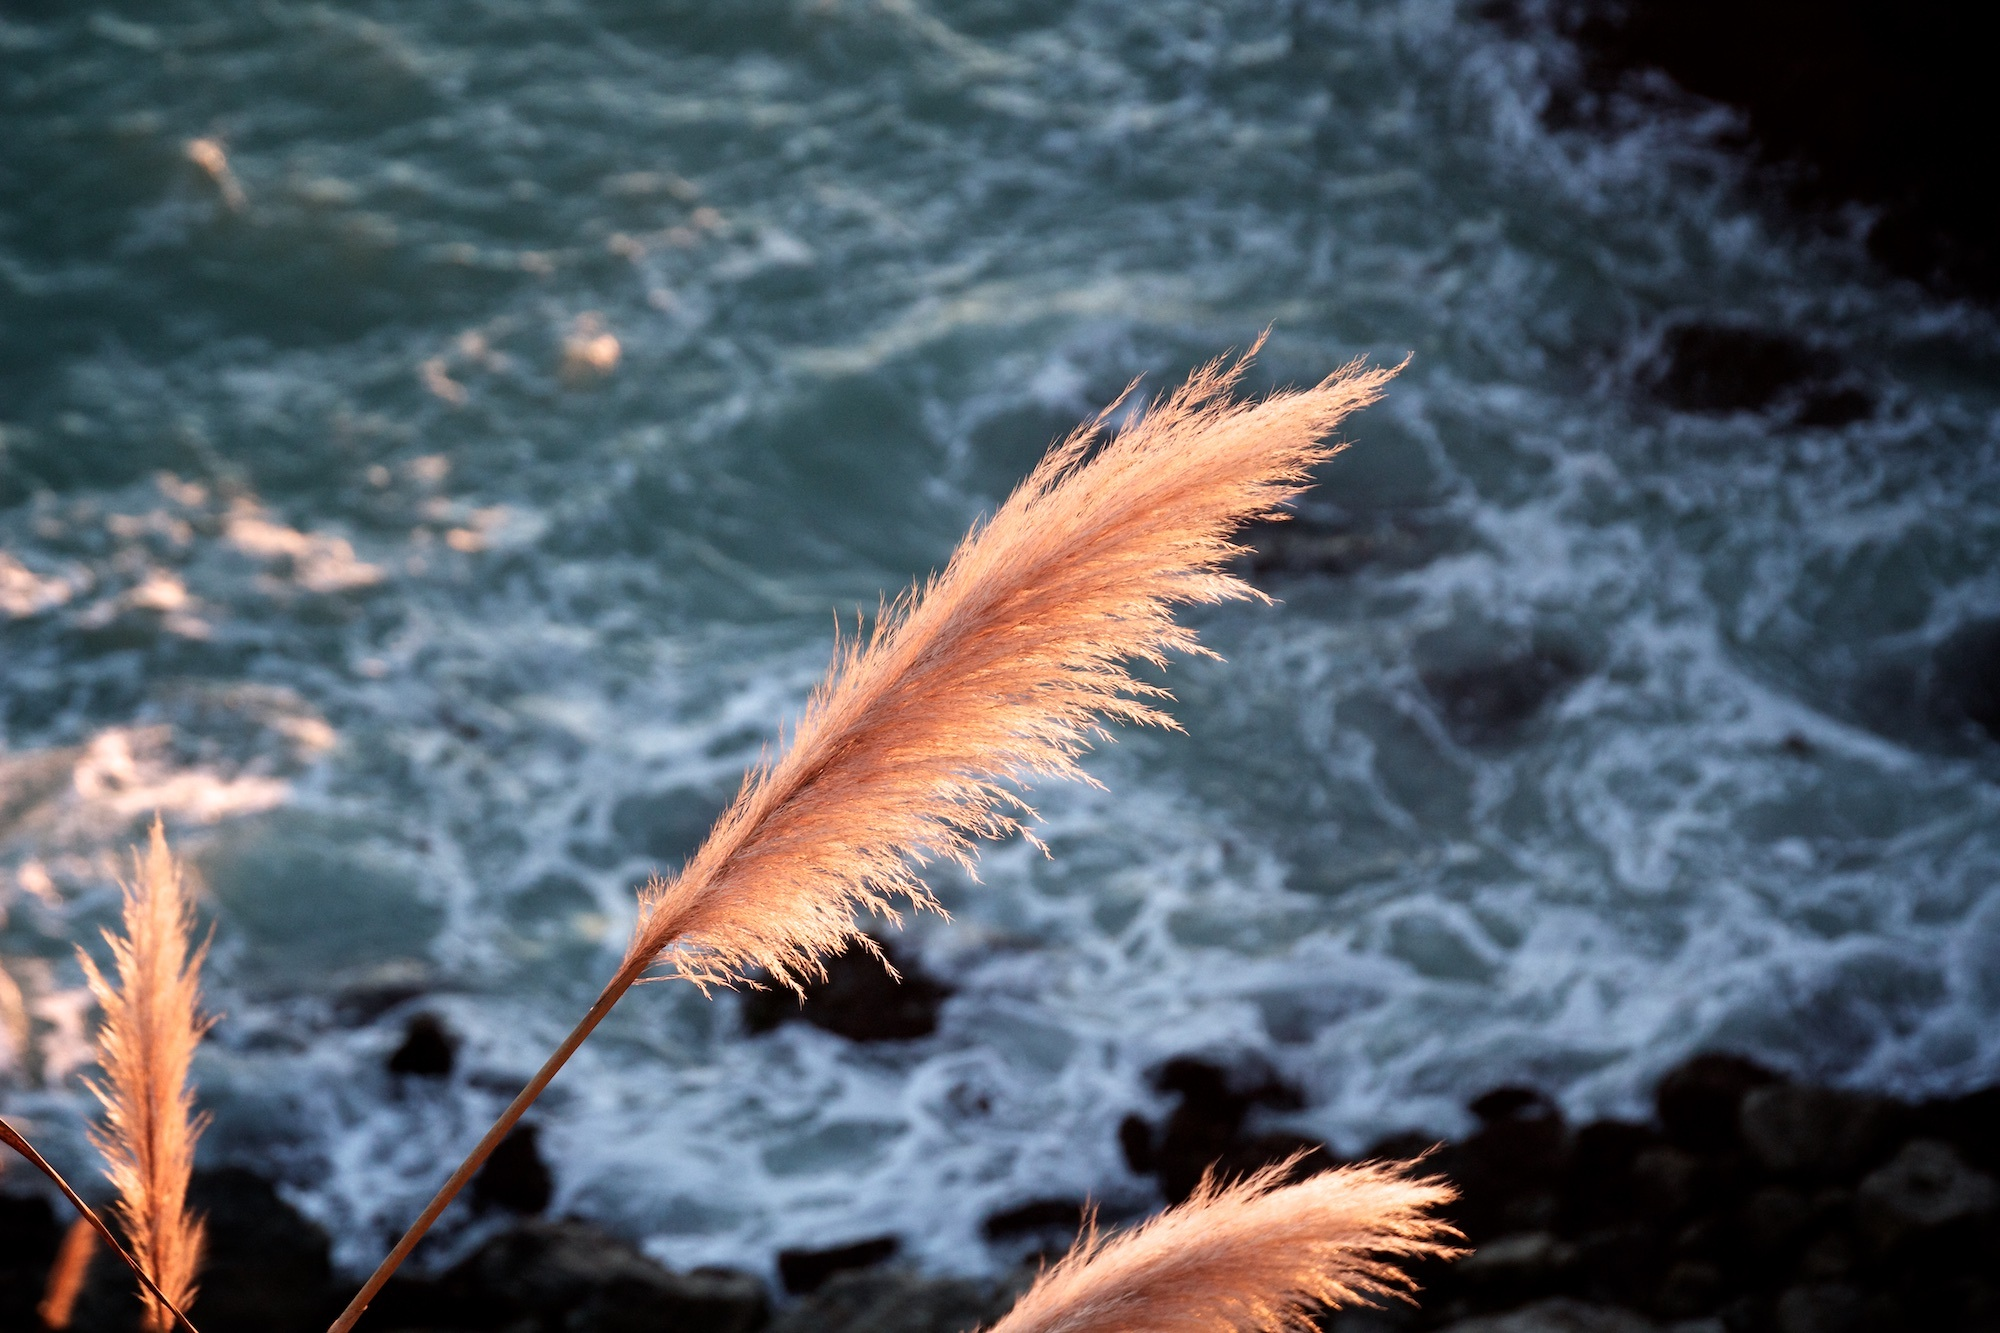 Feathery grasses in foreground above a rocky shoreline. Overcome feelings of anxiety and fear.